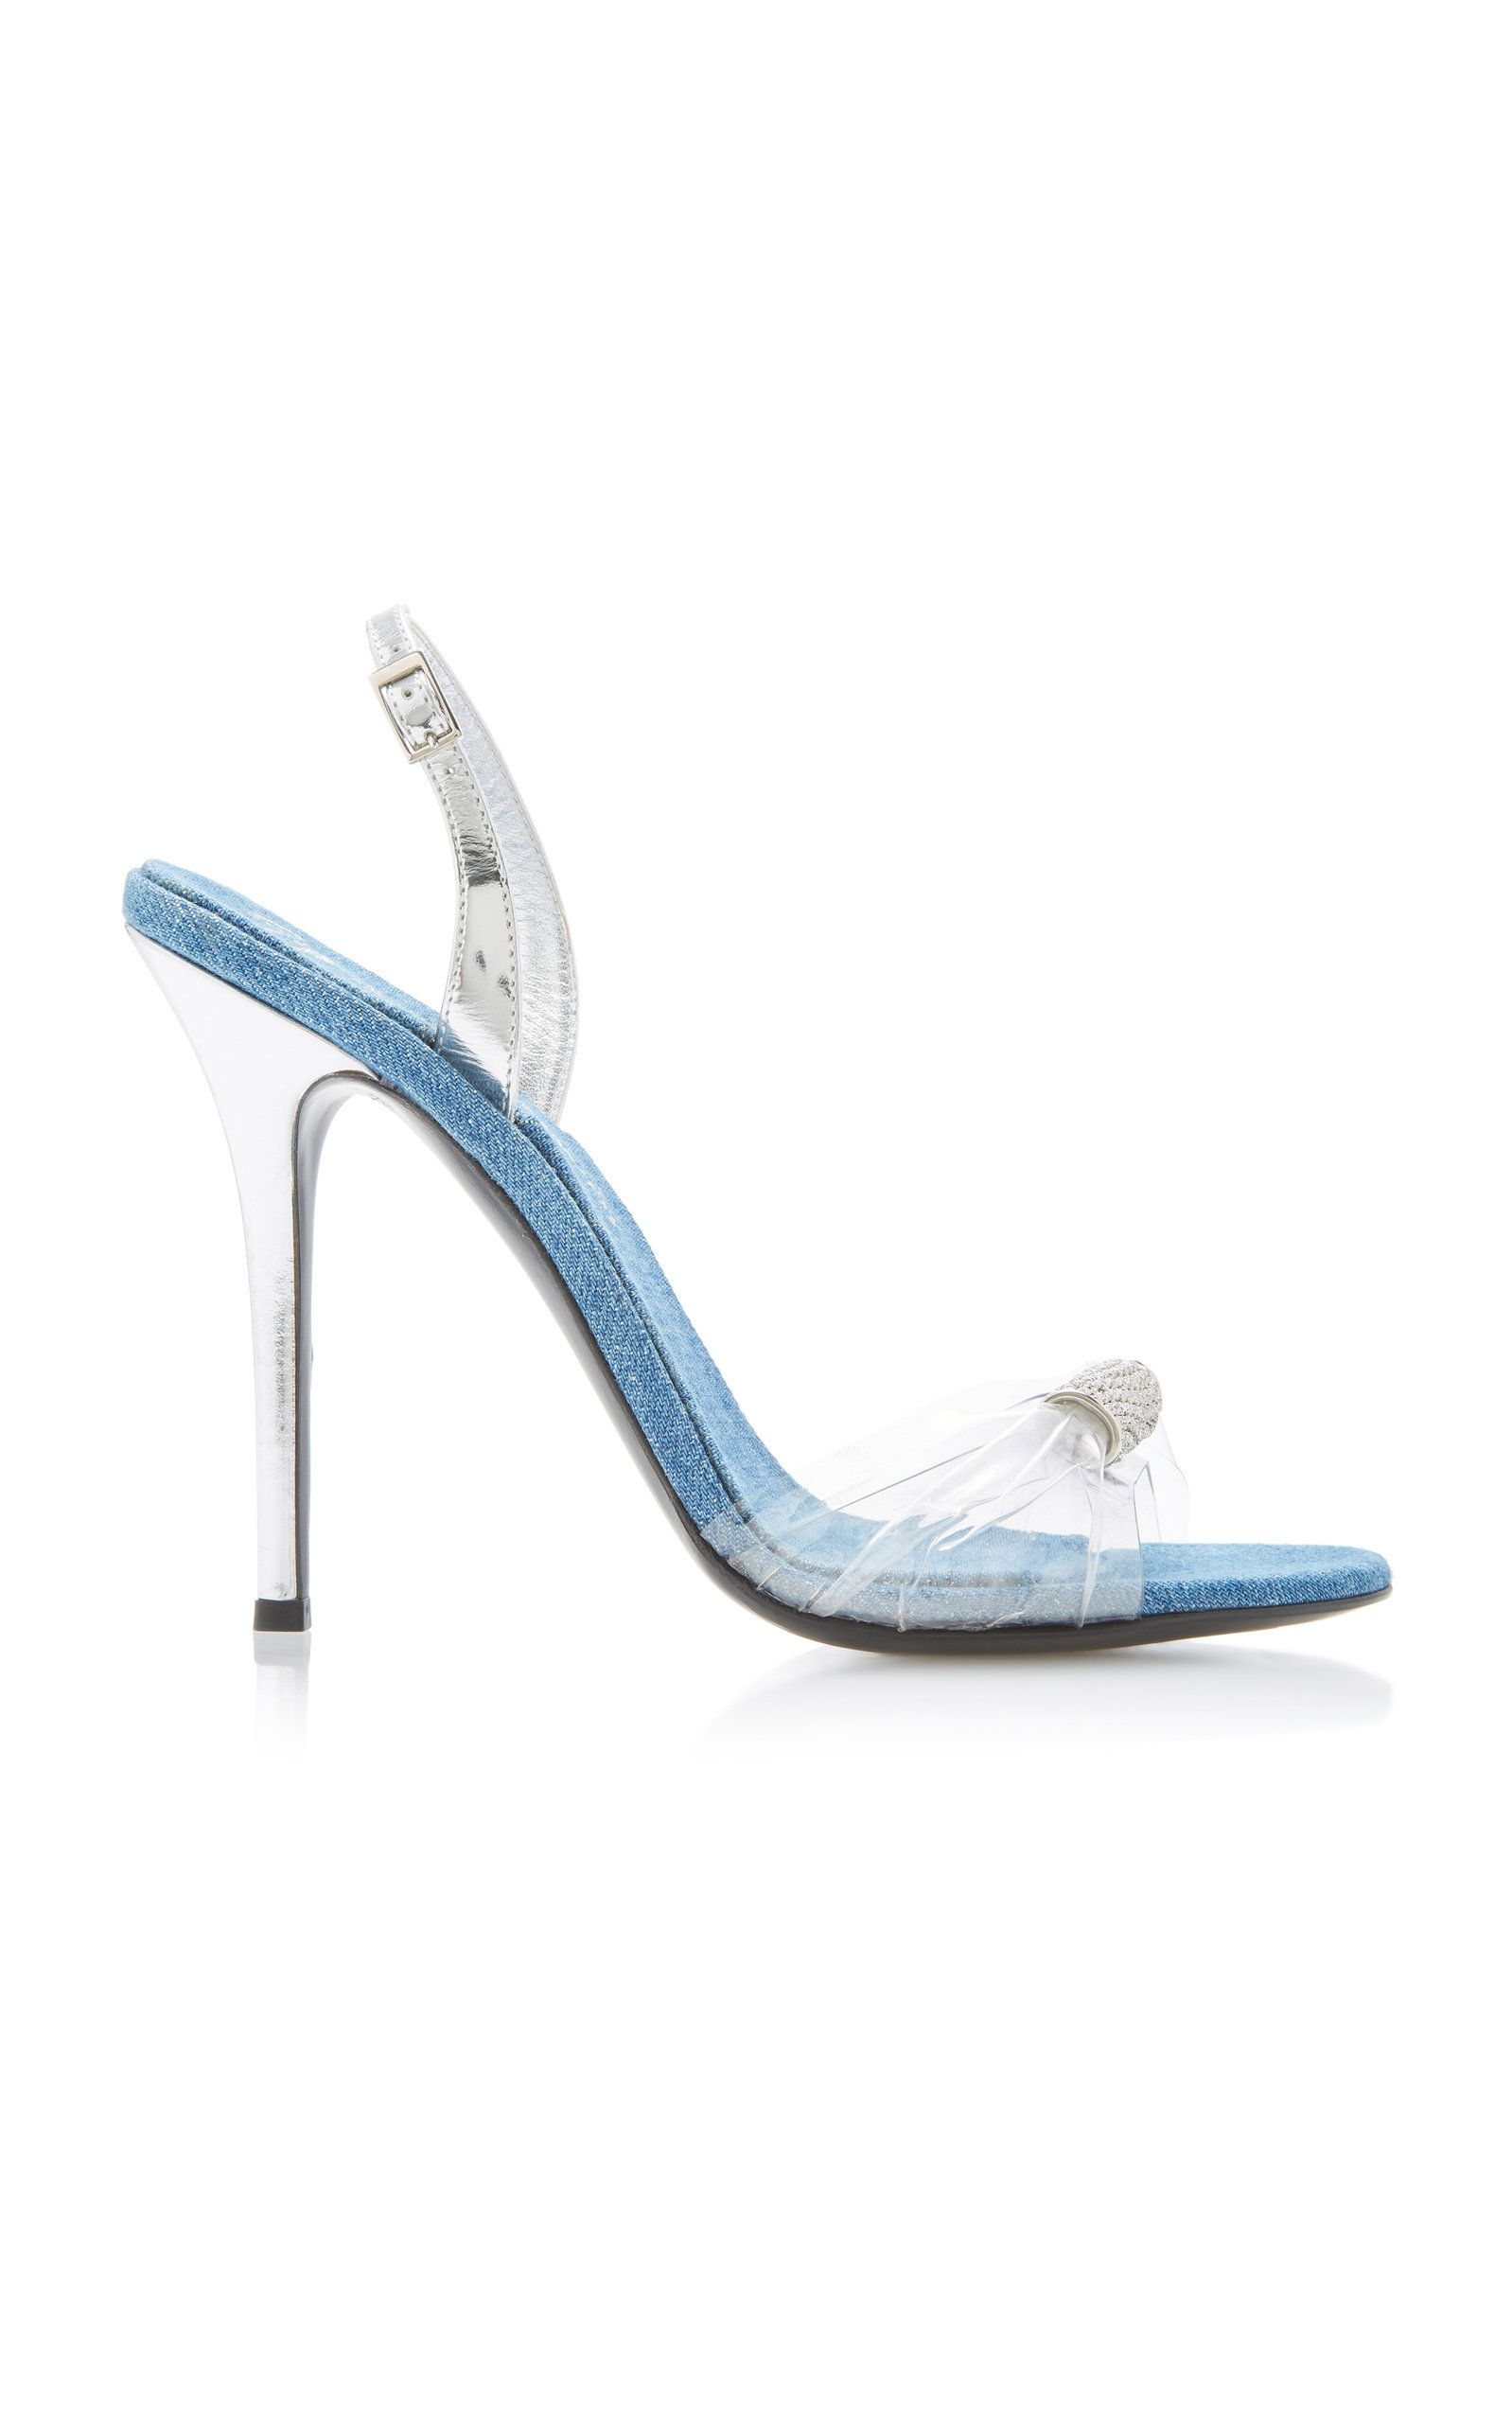 3d82d85839daf5 37 Blue Wedding Shoes - The Best Blue Shoes For Your Wedding